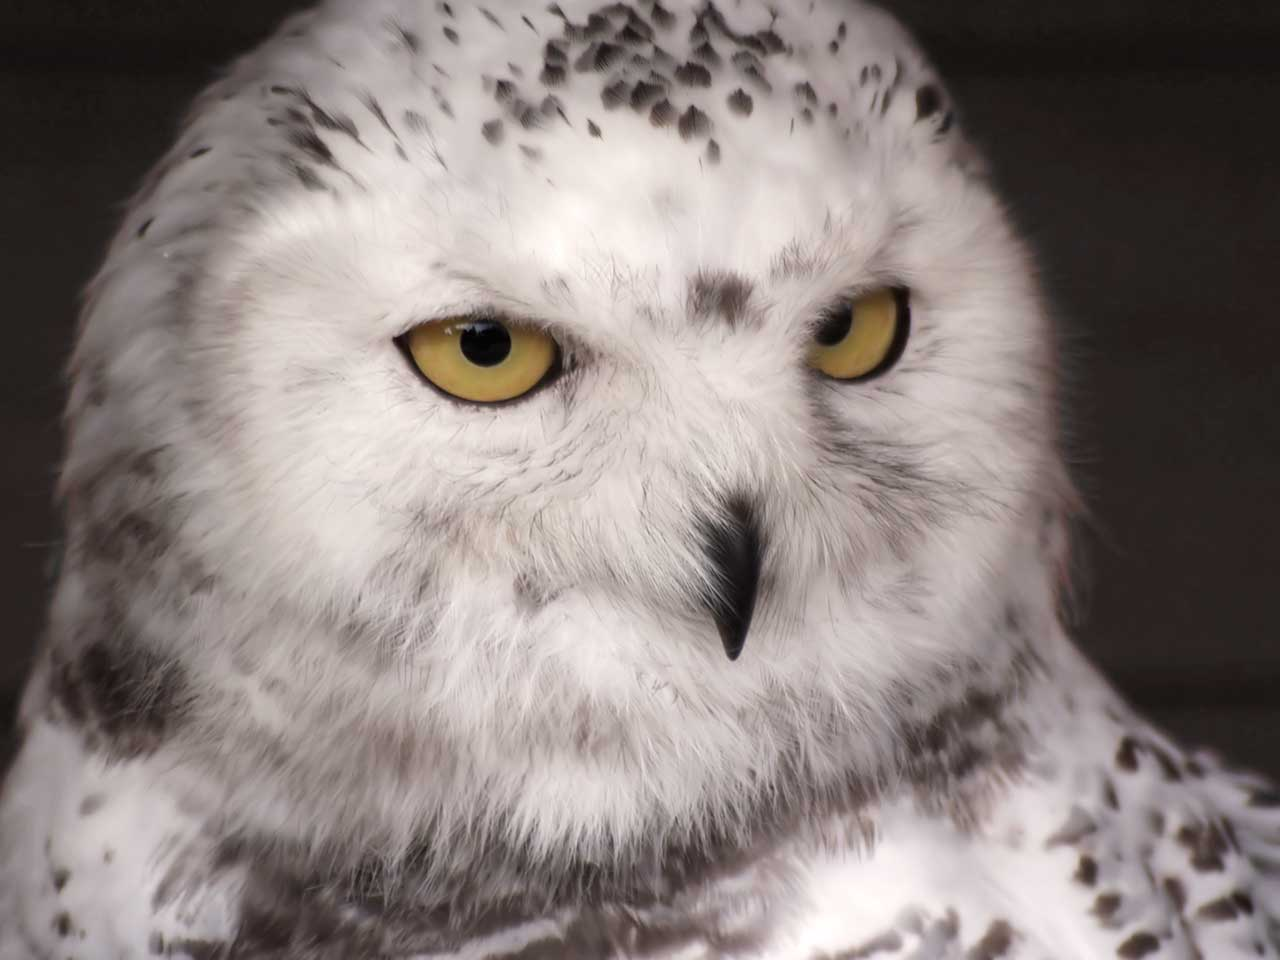 a white owl reminds us to make SMART goals to succeed